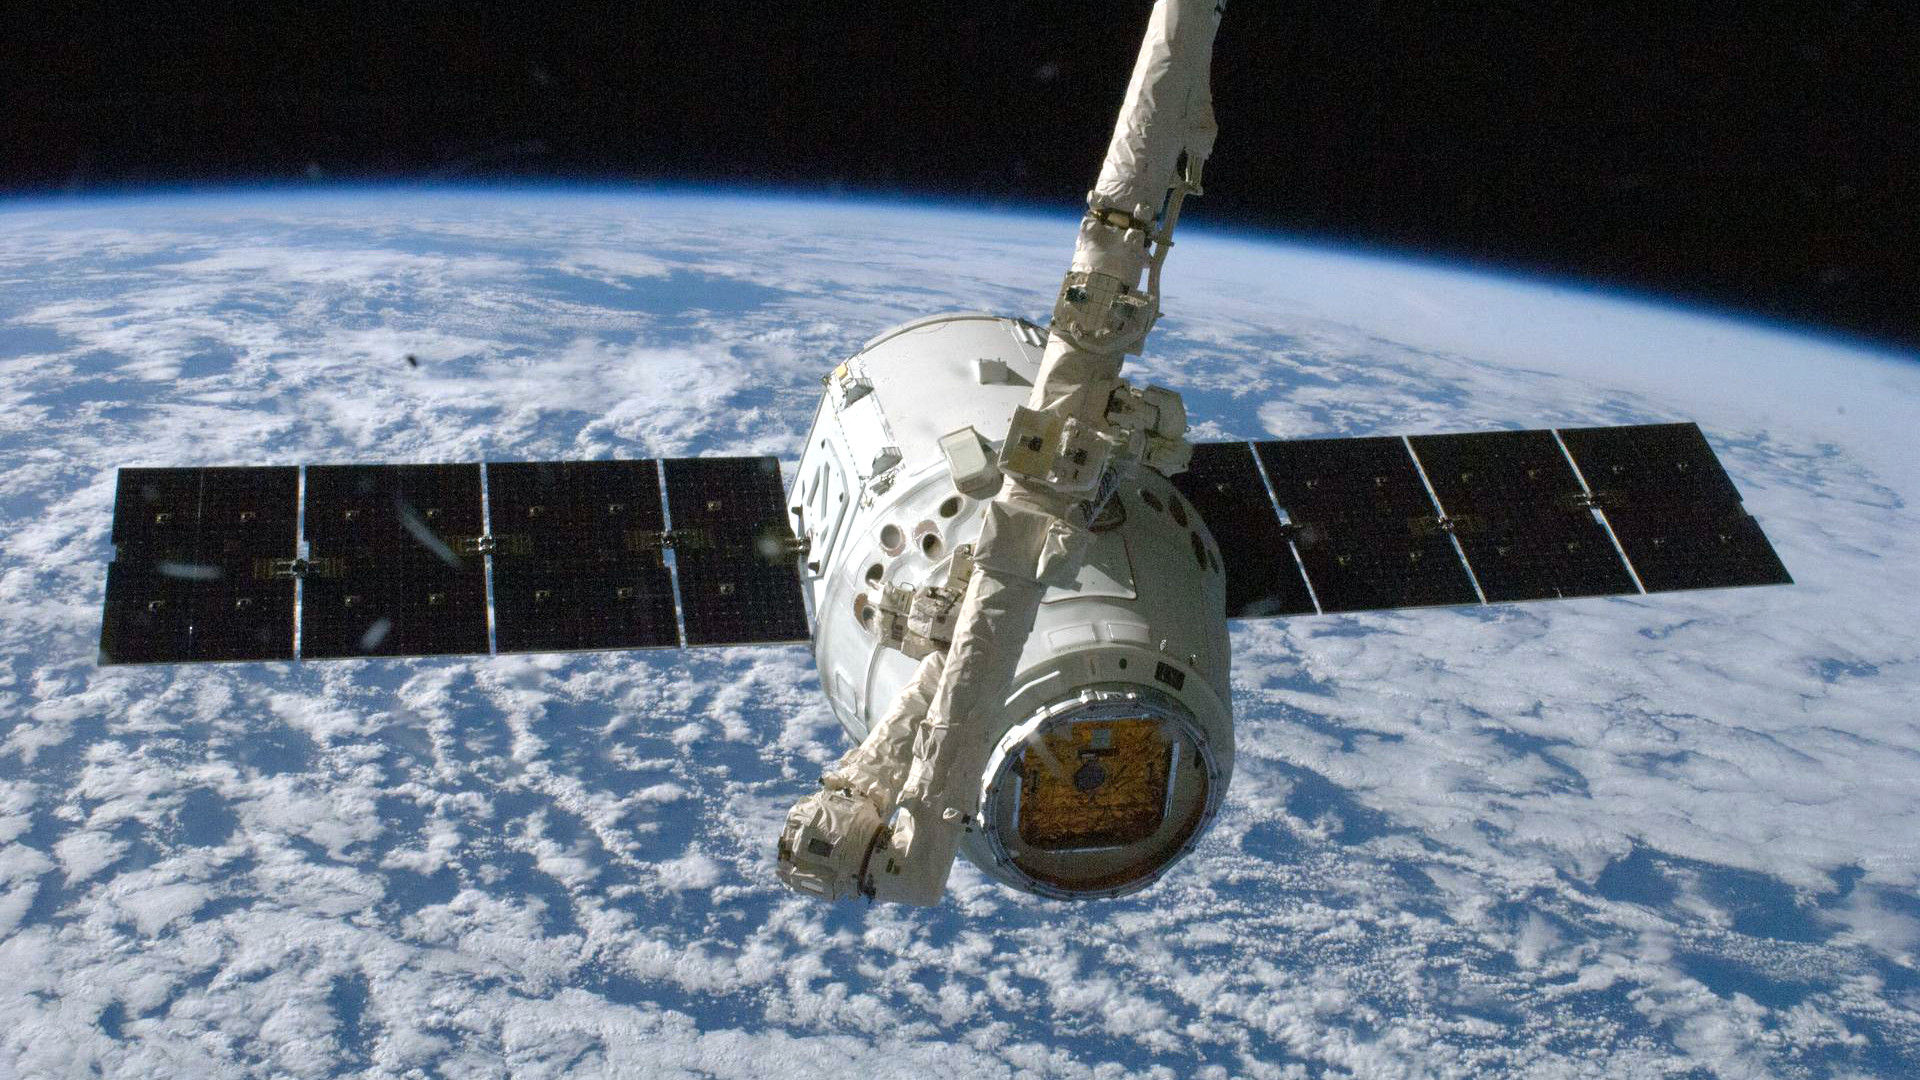 The SpaceX Dragon commercial cargo craft is grappled by the International Space Station's Canadarm2 robotic arm.